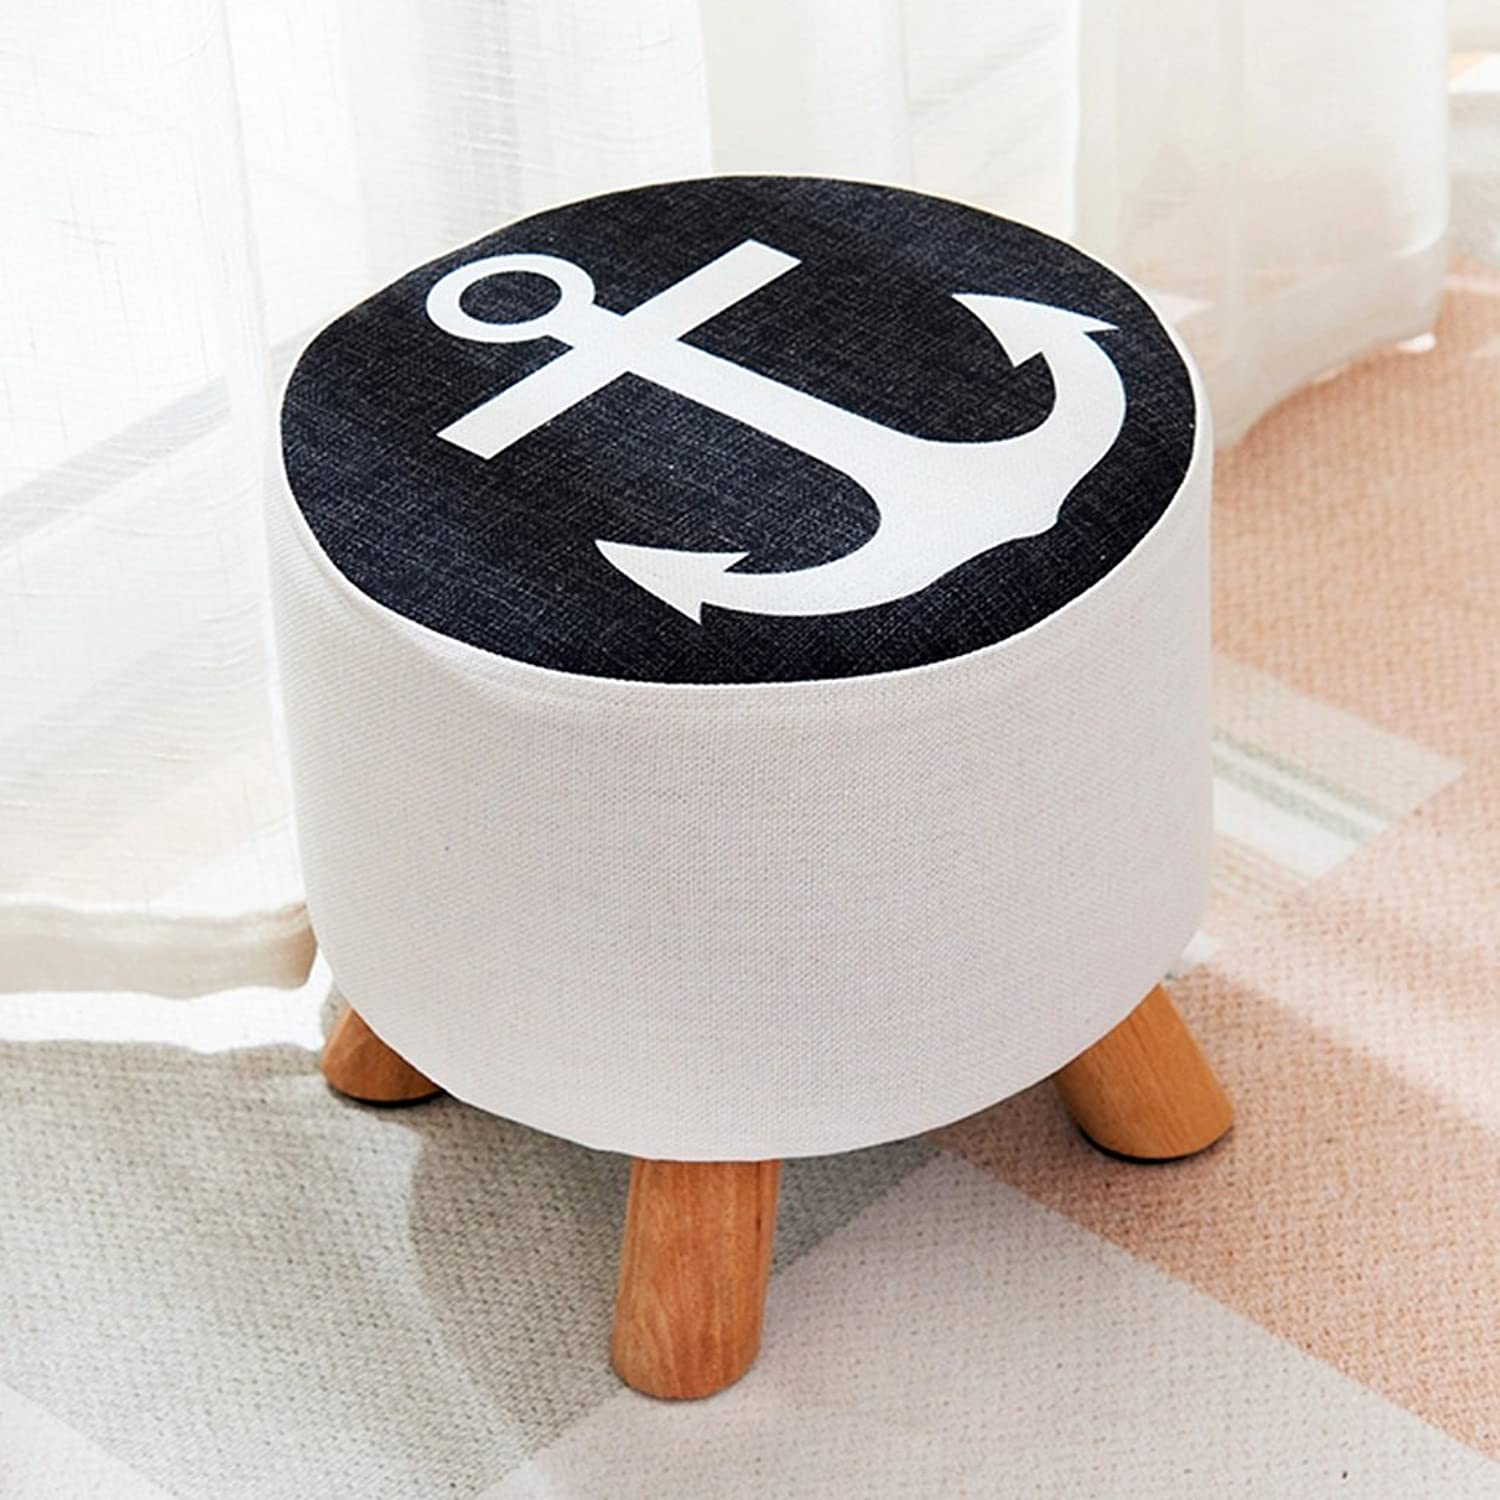 Padded Footstool Solid Wood Fabric Small Round stools Sofa stools, shoes Home use shoes Benches Fashion Bench Stool Coffee Table Comfortable not Tired